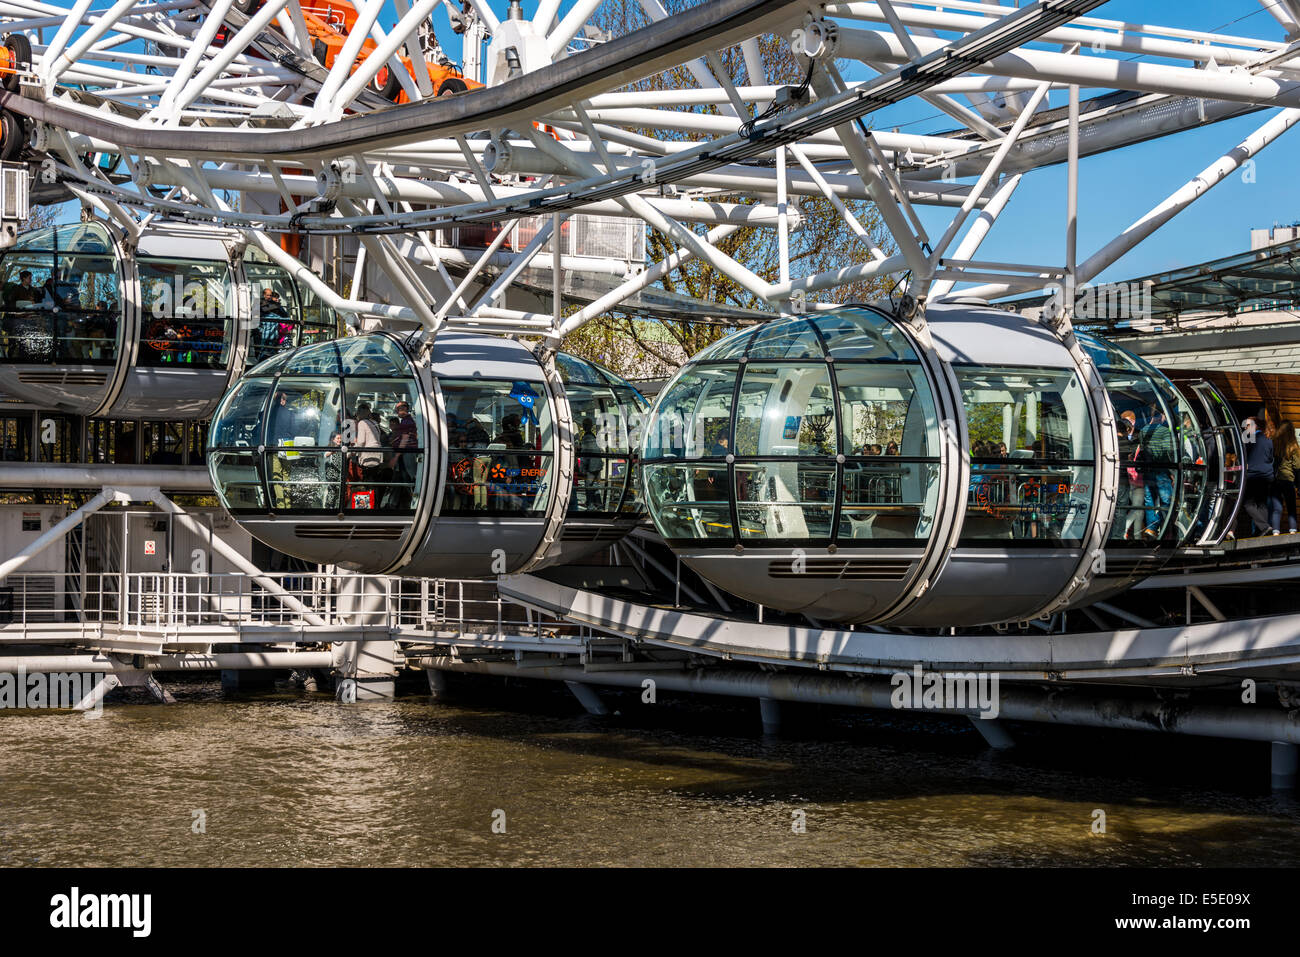 Passengers starting their journey on The London Eye, a giant Ferris wheel on the South Bank of the River Thames - Stock Image